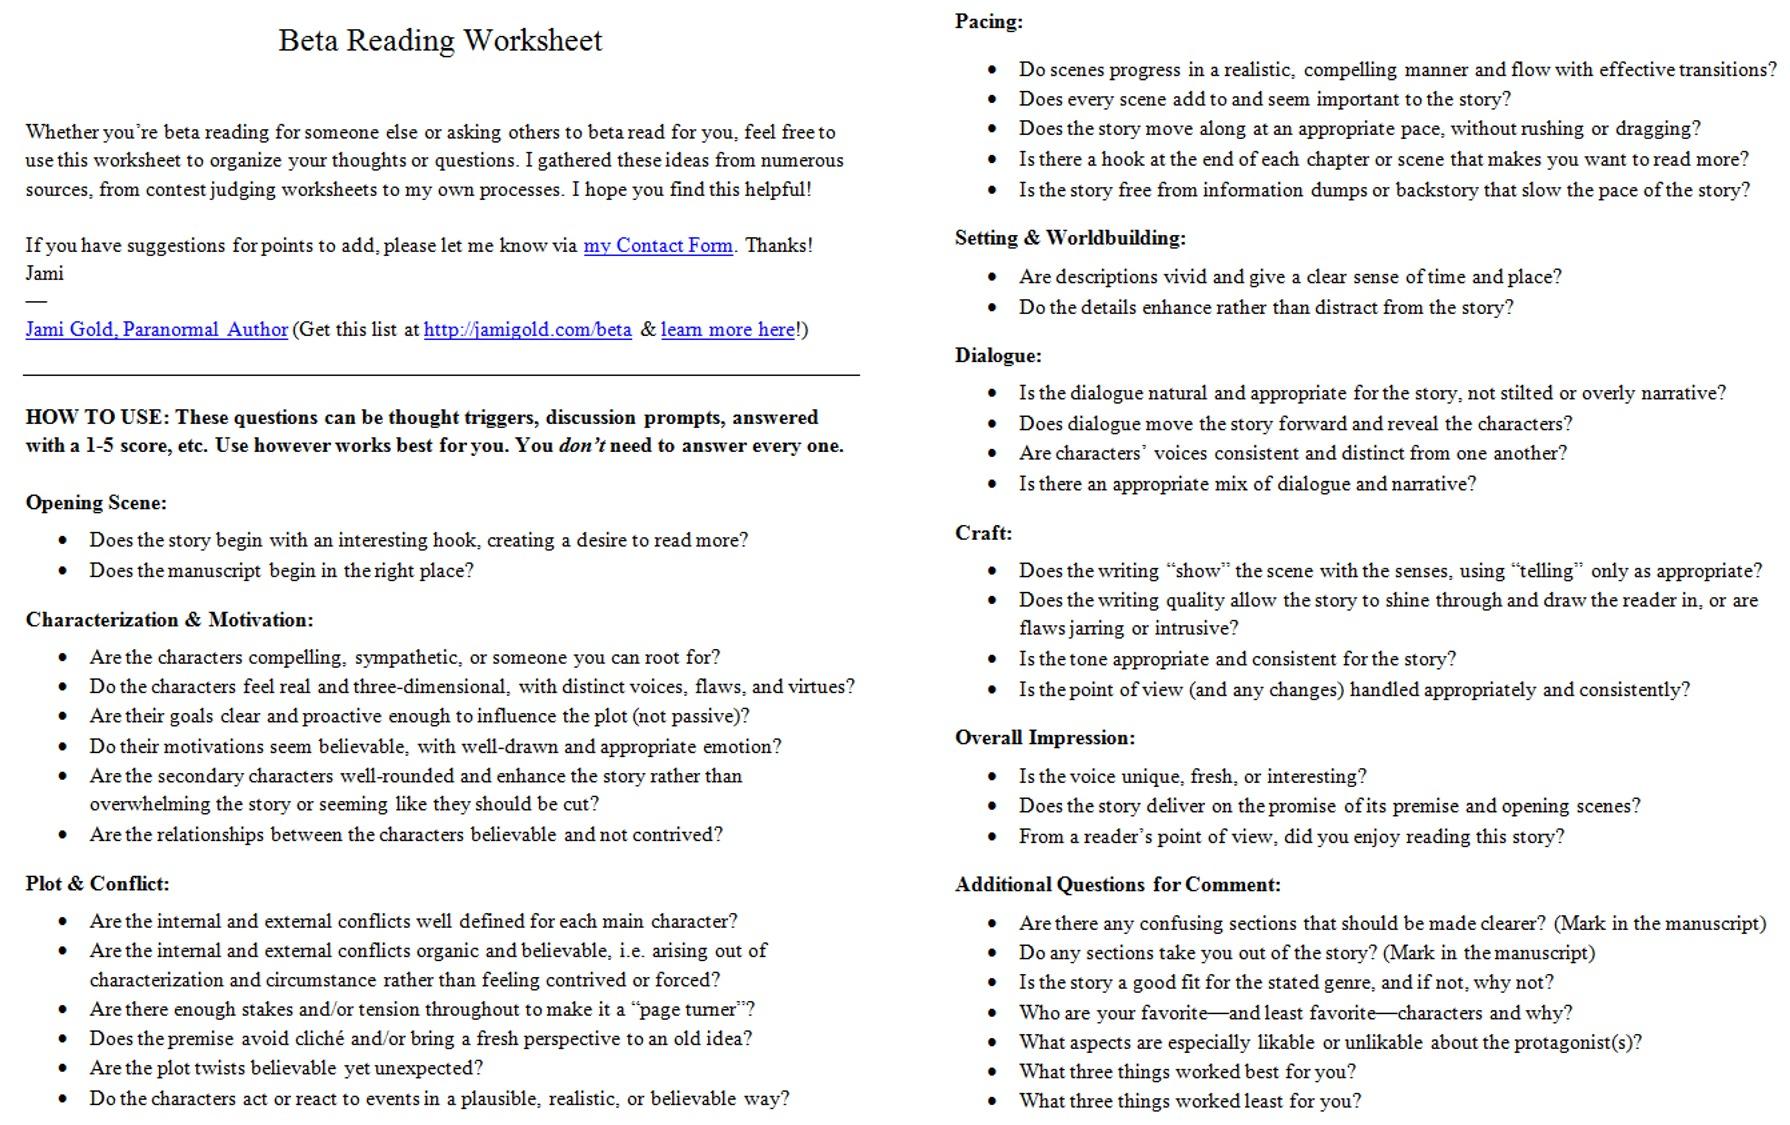 Weirdmailus  Ravishing Worksheets For Writers  Jami Gold Paranormal Author With Glamorous Screen Shot Of The Twopage Beta Reading Worksheet With Adorable Converting Unit Rates Worksheet Also Addition Math Fact Worksheets In Addition Washing Hands Worksheet And Superkids Worksheet As Well As Line Segment Worksheet Additionally Triangle Inequality Theorem Worksheets From Jamigoldcom With Weirdmailus  Glamorous Worksheets For Writers  Jami Gold Paranormal Author With Adorable Screen Shot Of The Twopage Beta Reading Worksheet And Ravishing Converting Unit Rates Worksheet Also Addition Math Fact Worksheets In Addition Washing Hands Worksheet From Jamigoldcom